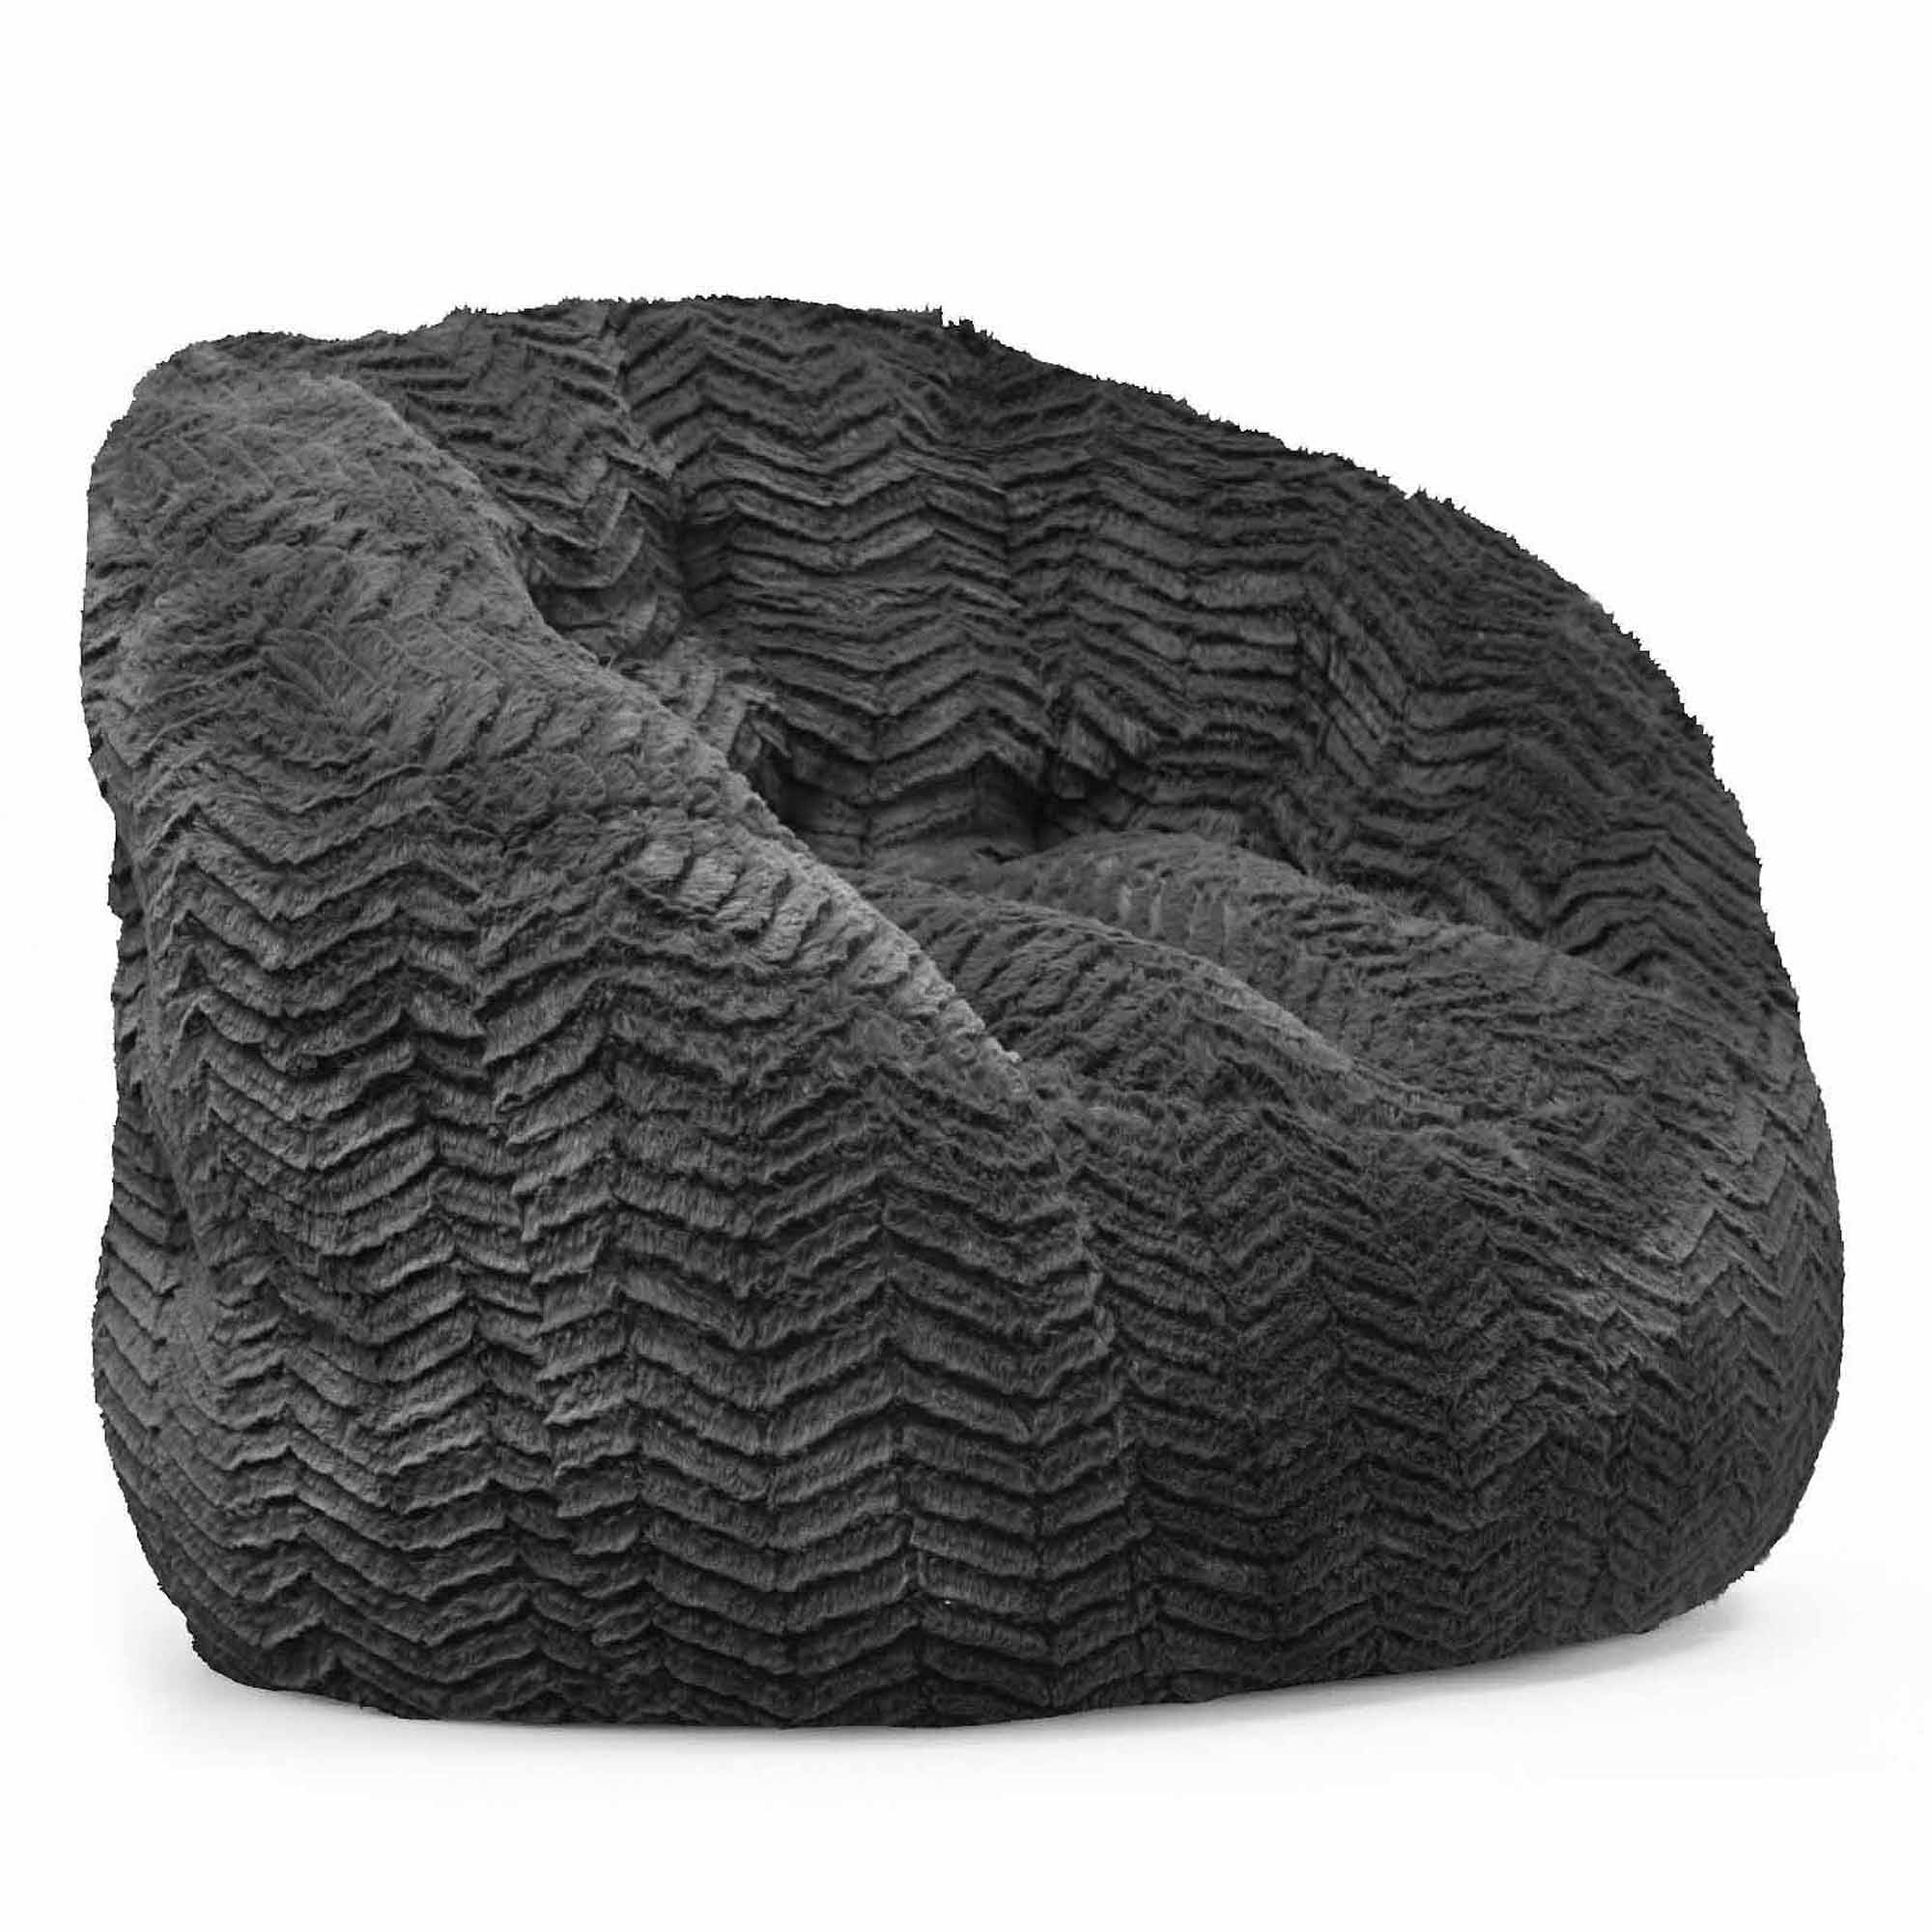 Cocoon Faux Fur Bean Bag Chair, Multiple Colors   Walmart.com